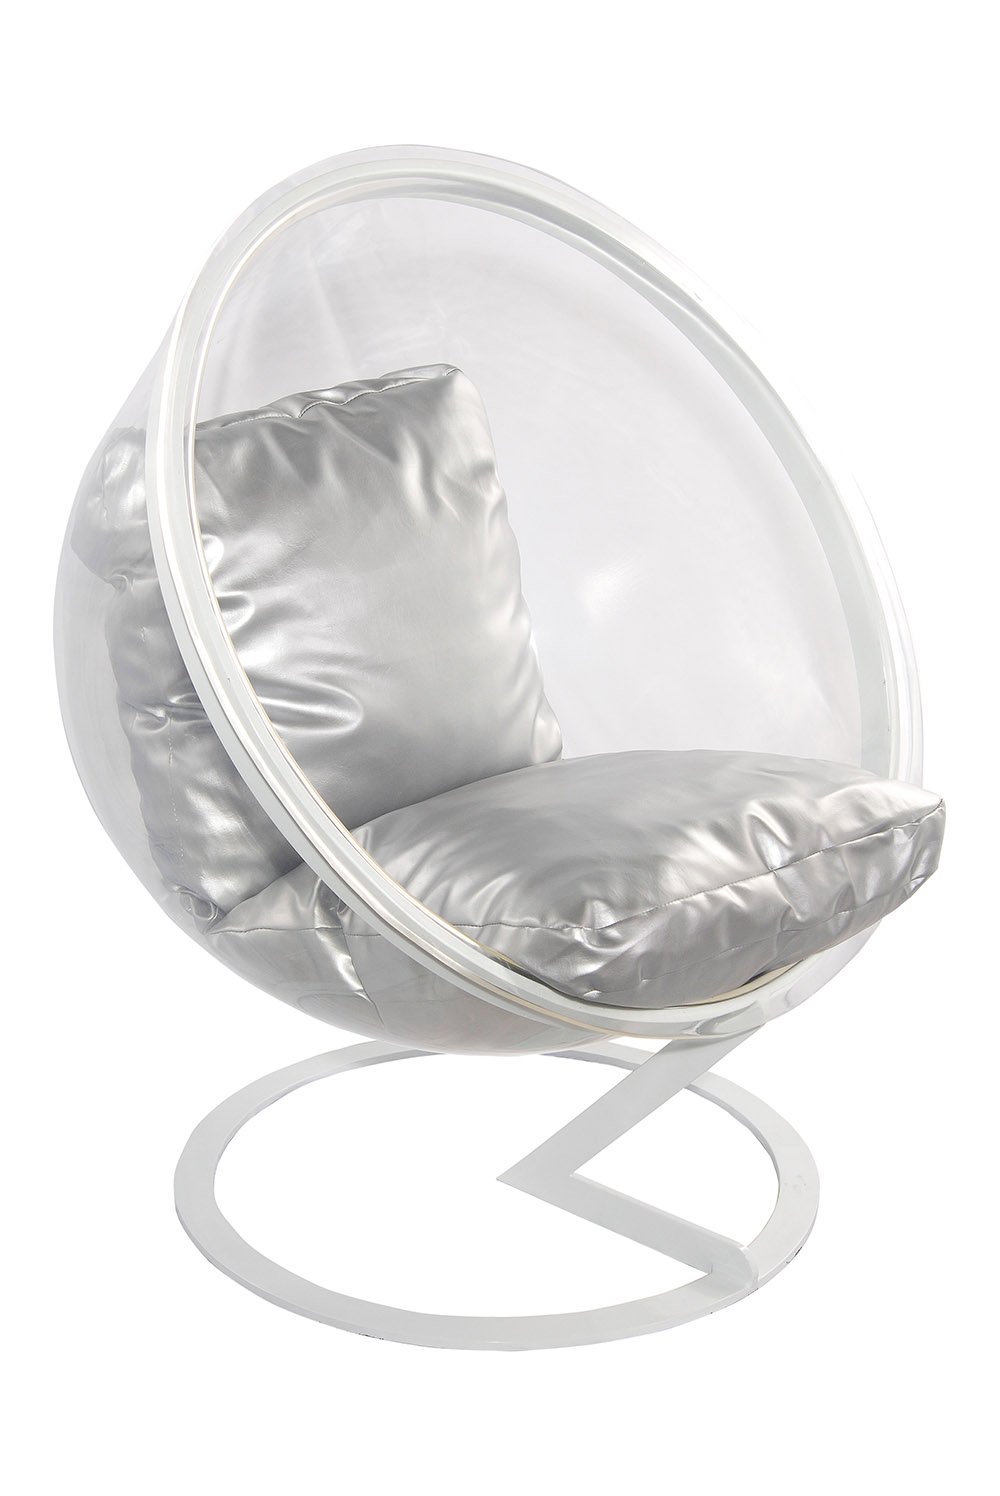 Bubble Chair Piso DC 618 A 124 L 103 P 78